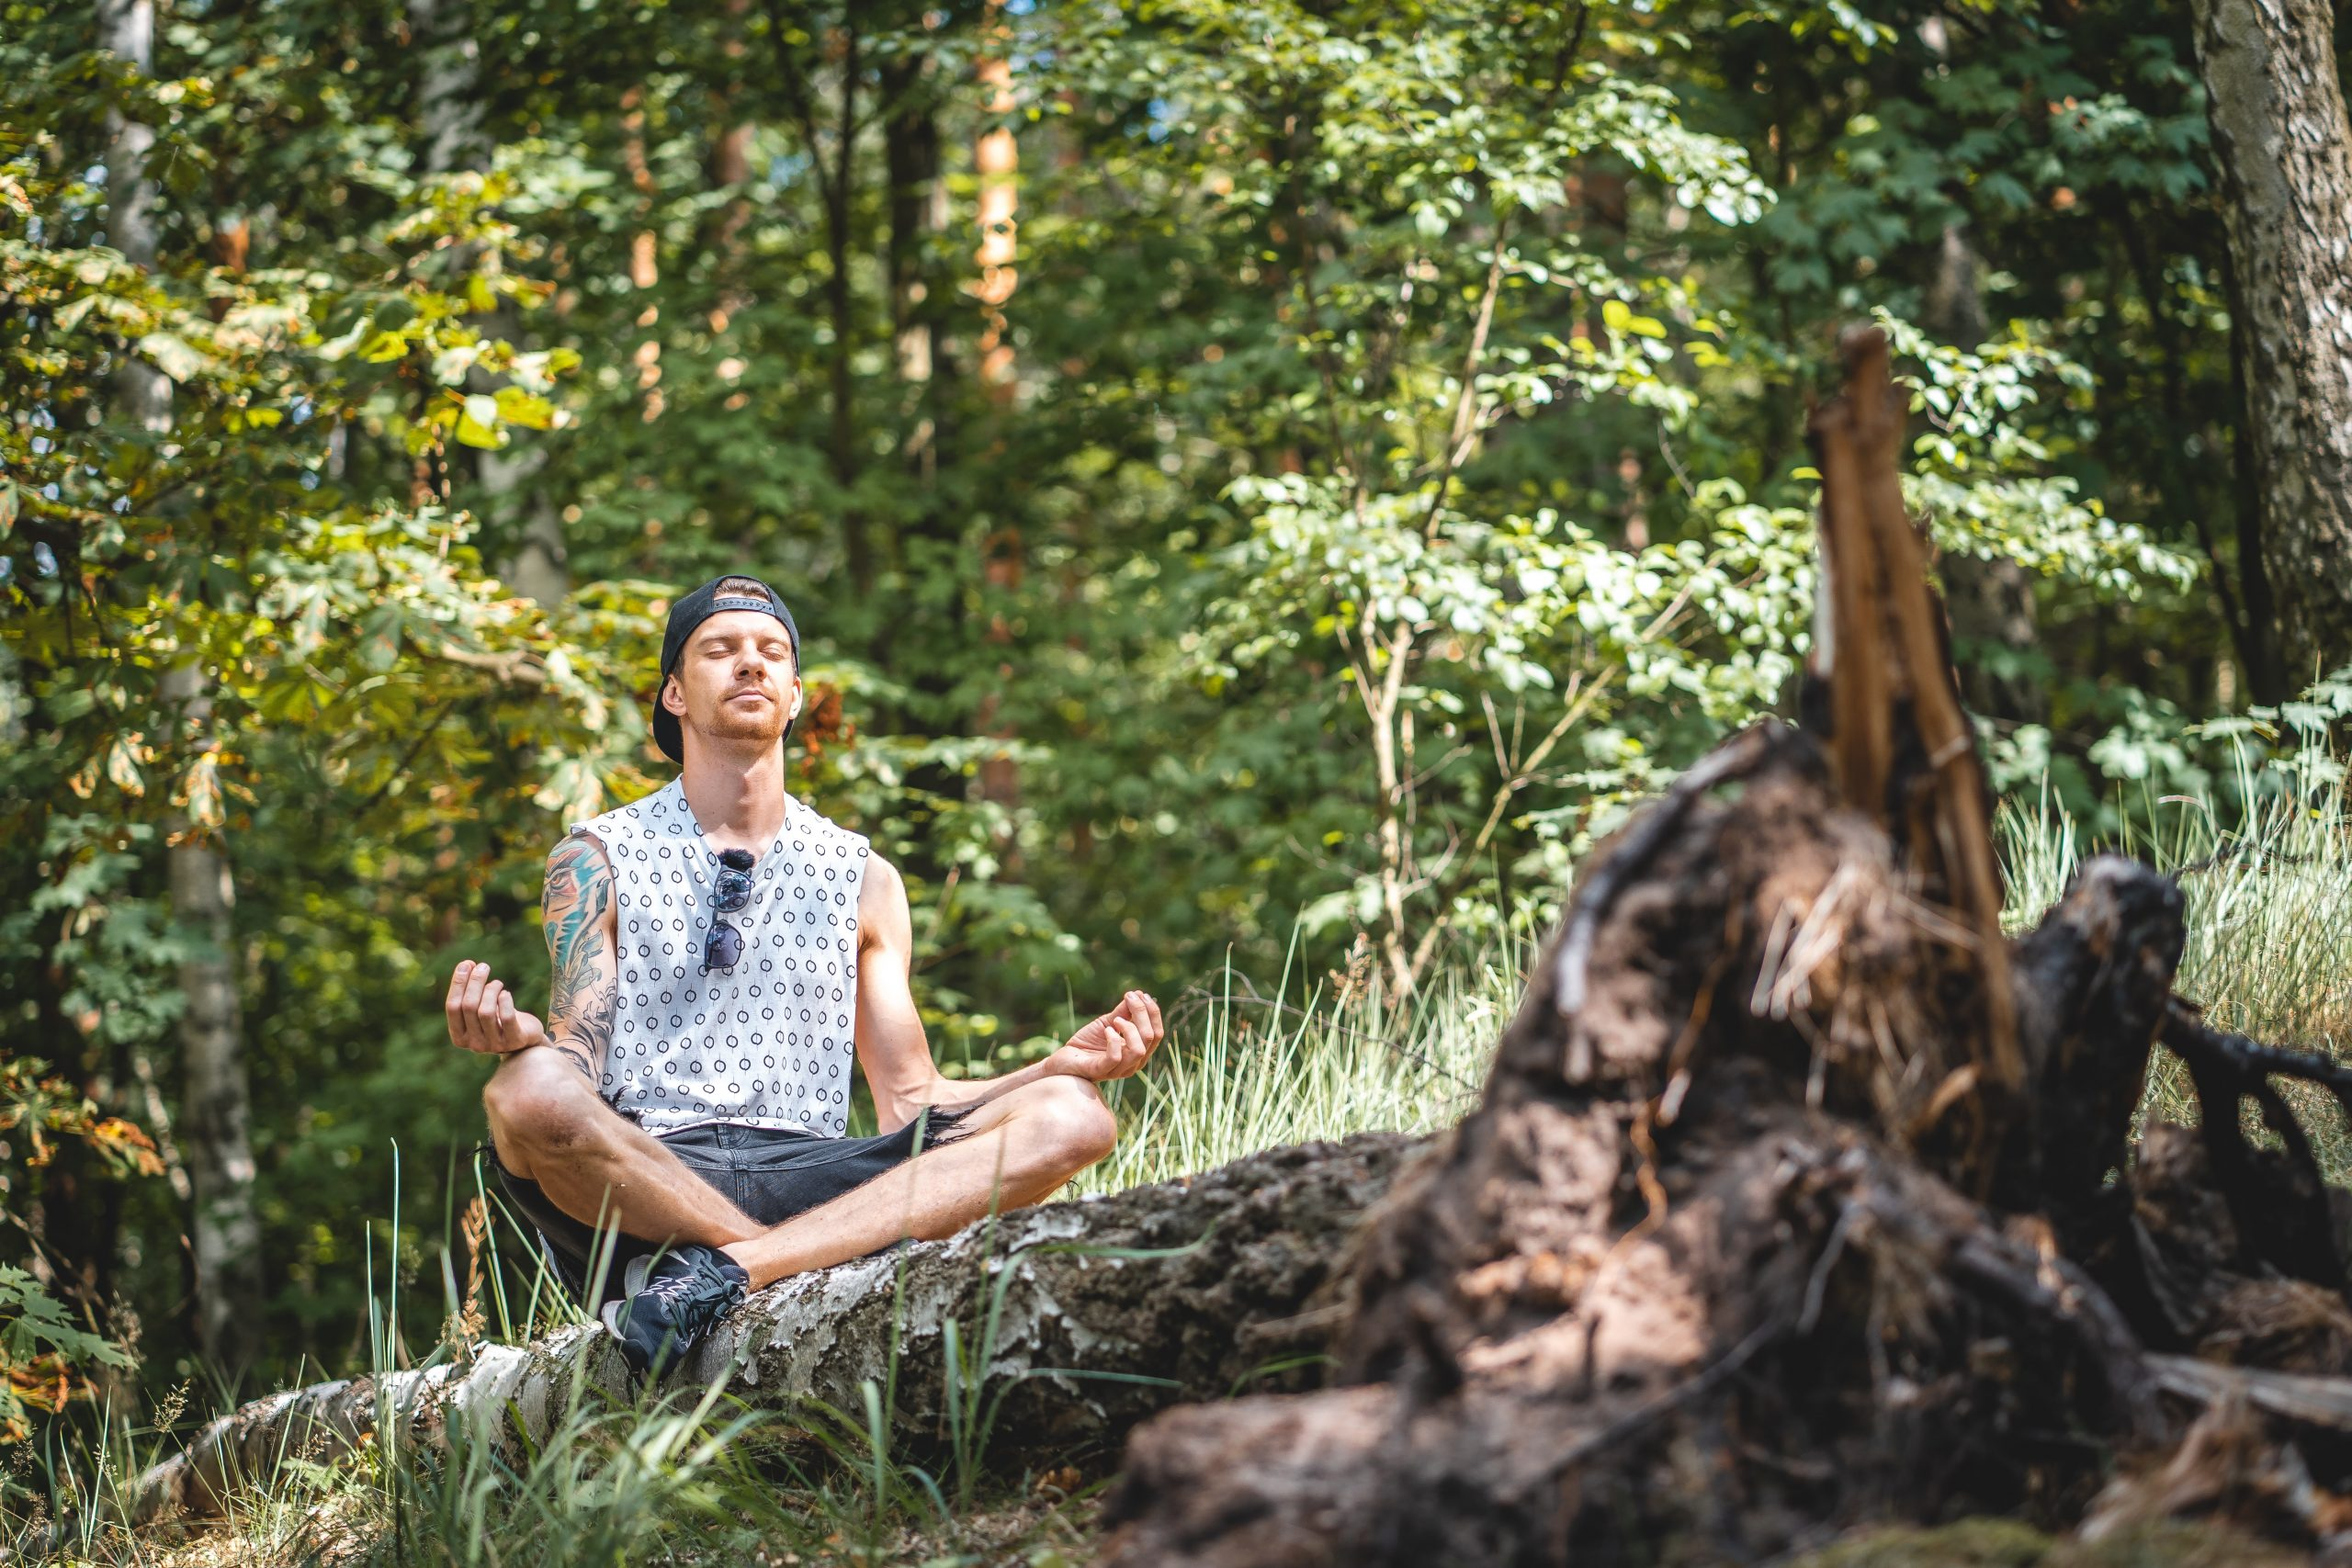 man sitting on a log in the outdoor nature meditating